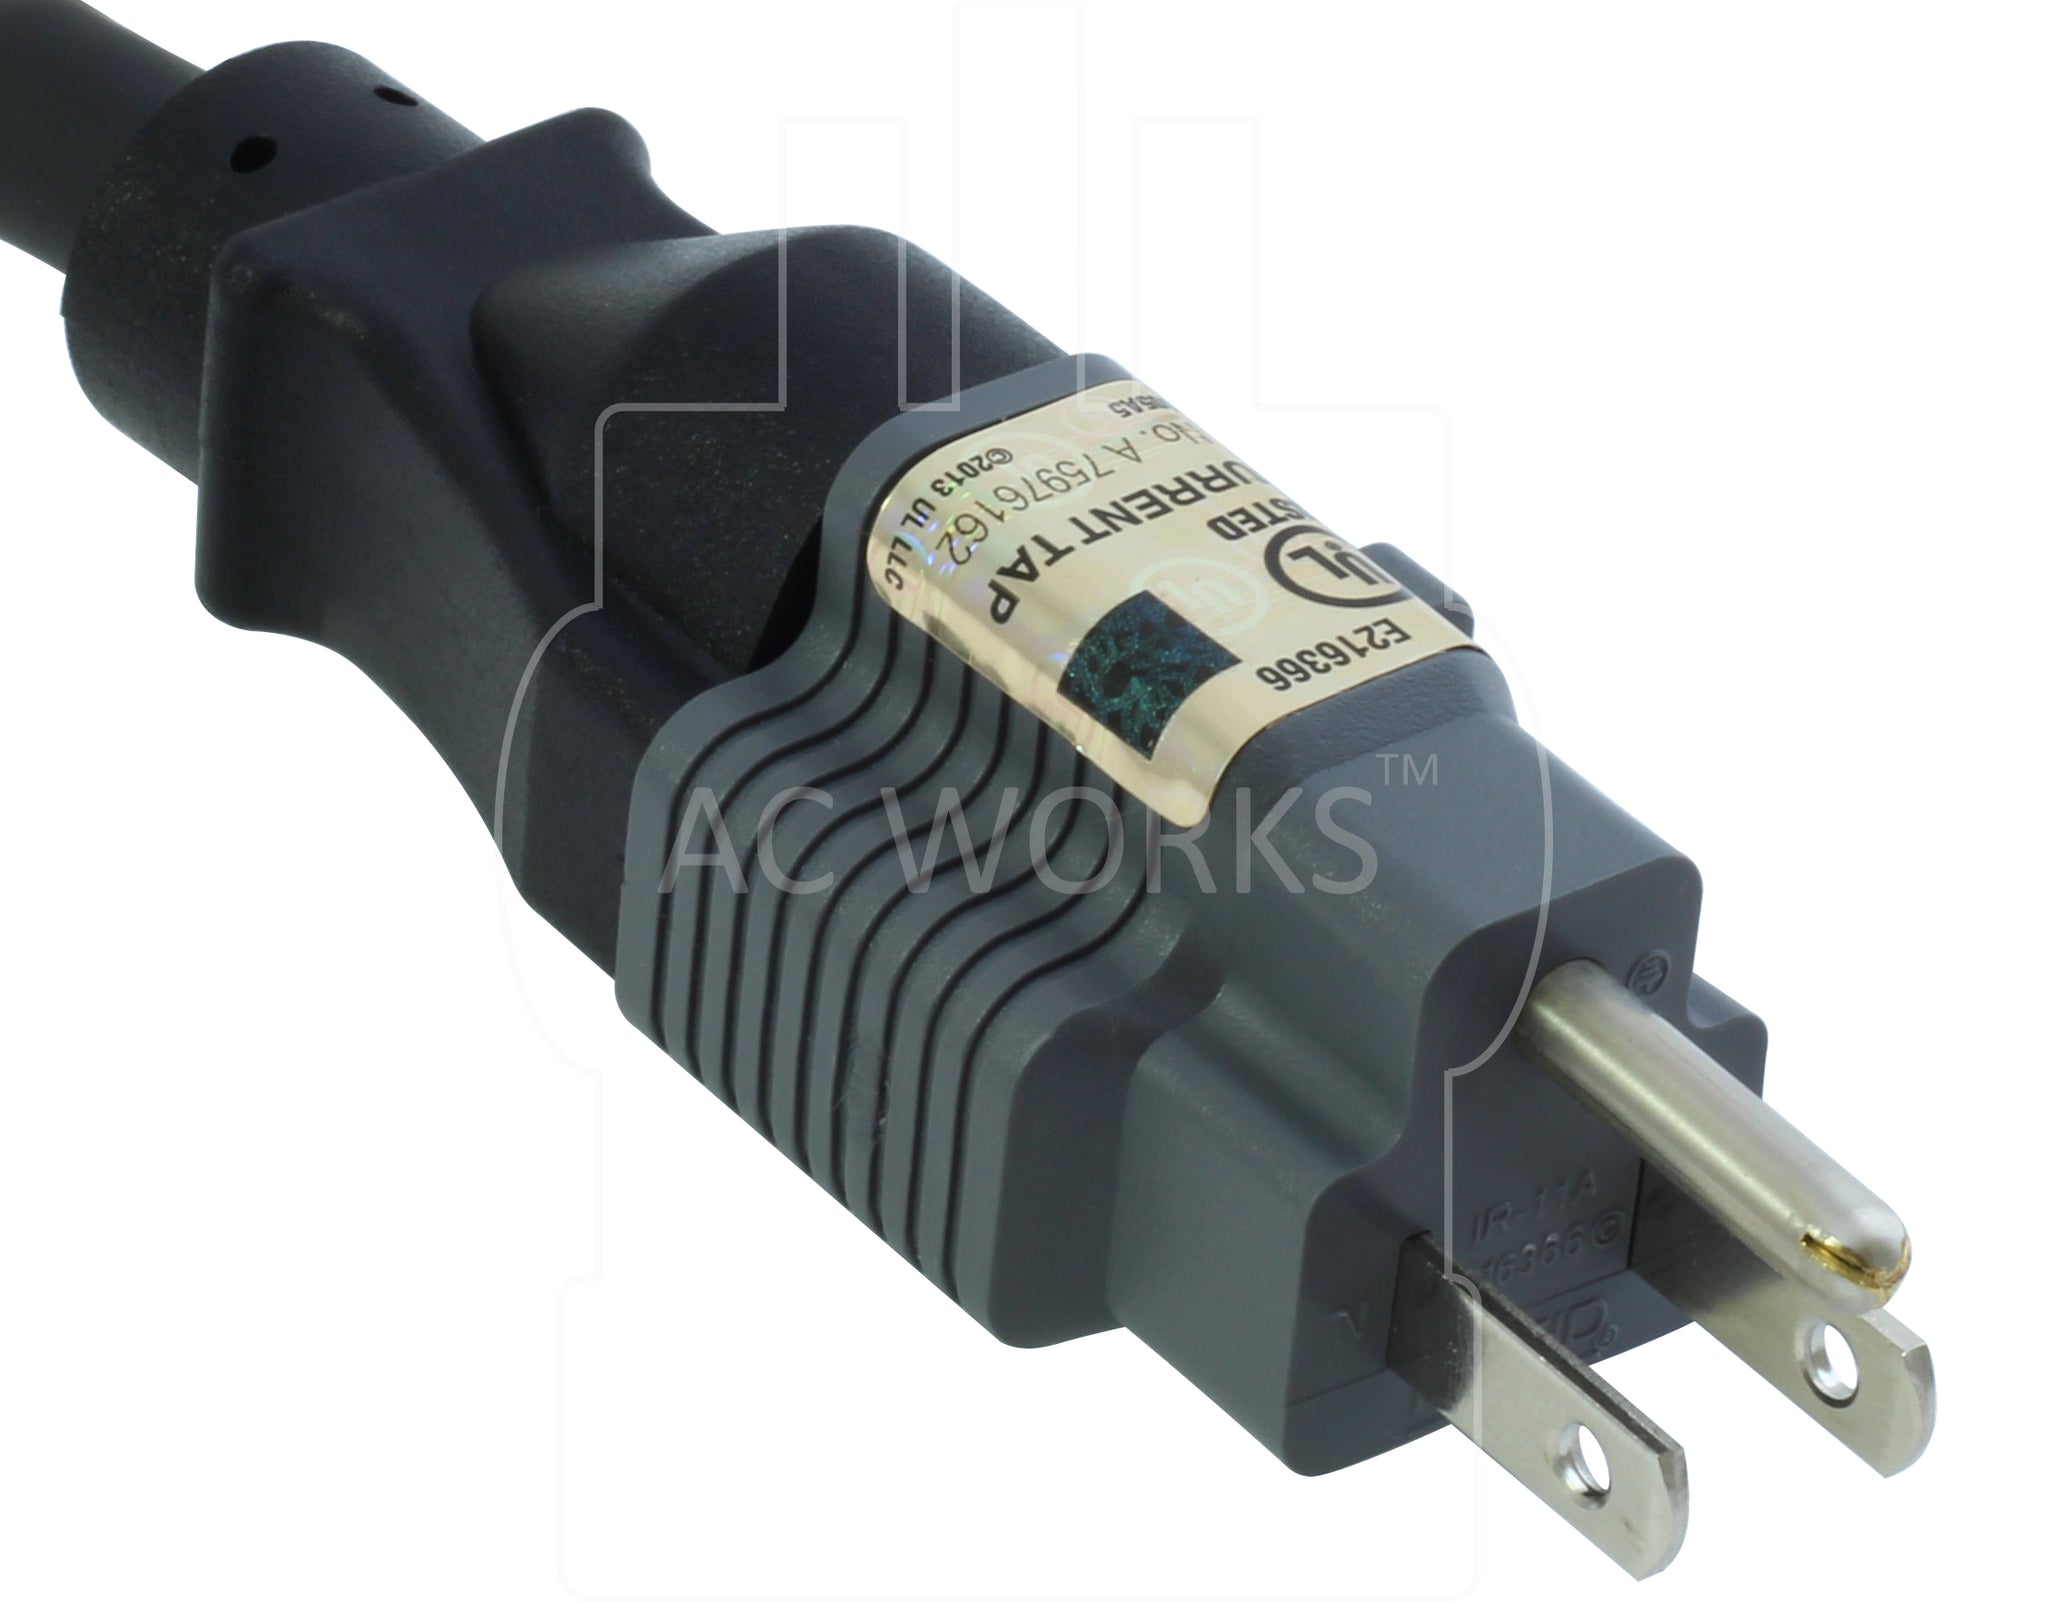 15A to 20A Adapter with Latest Technology – AC Connectors